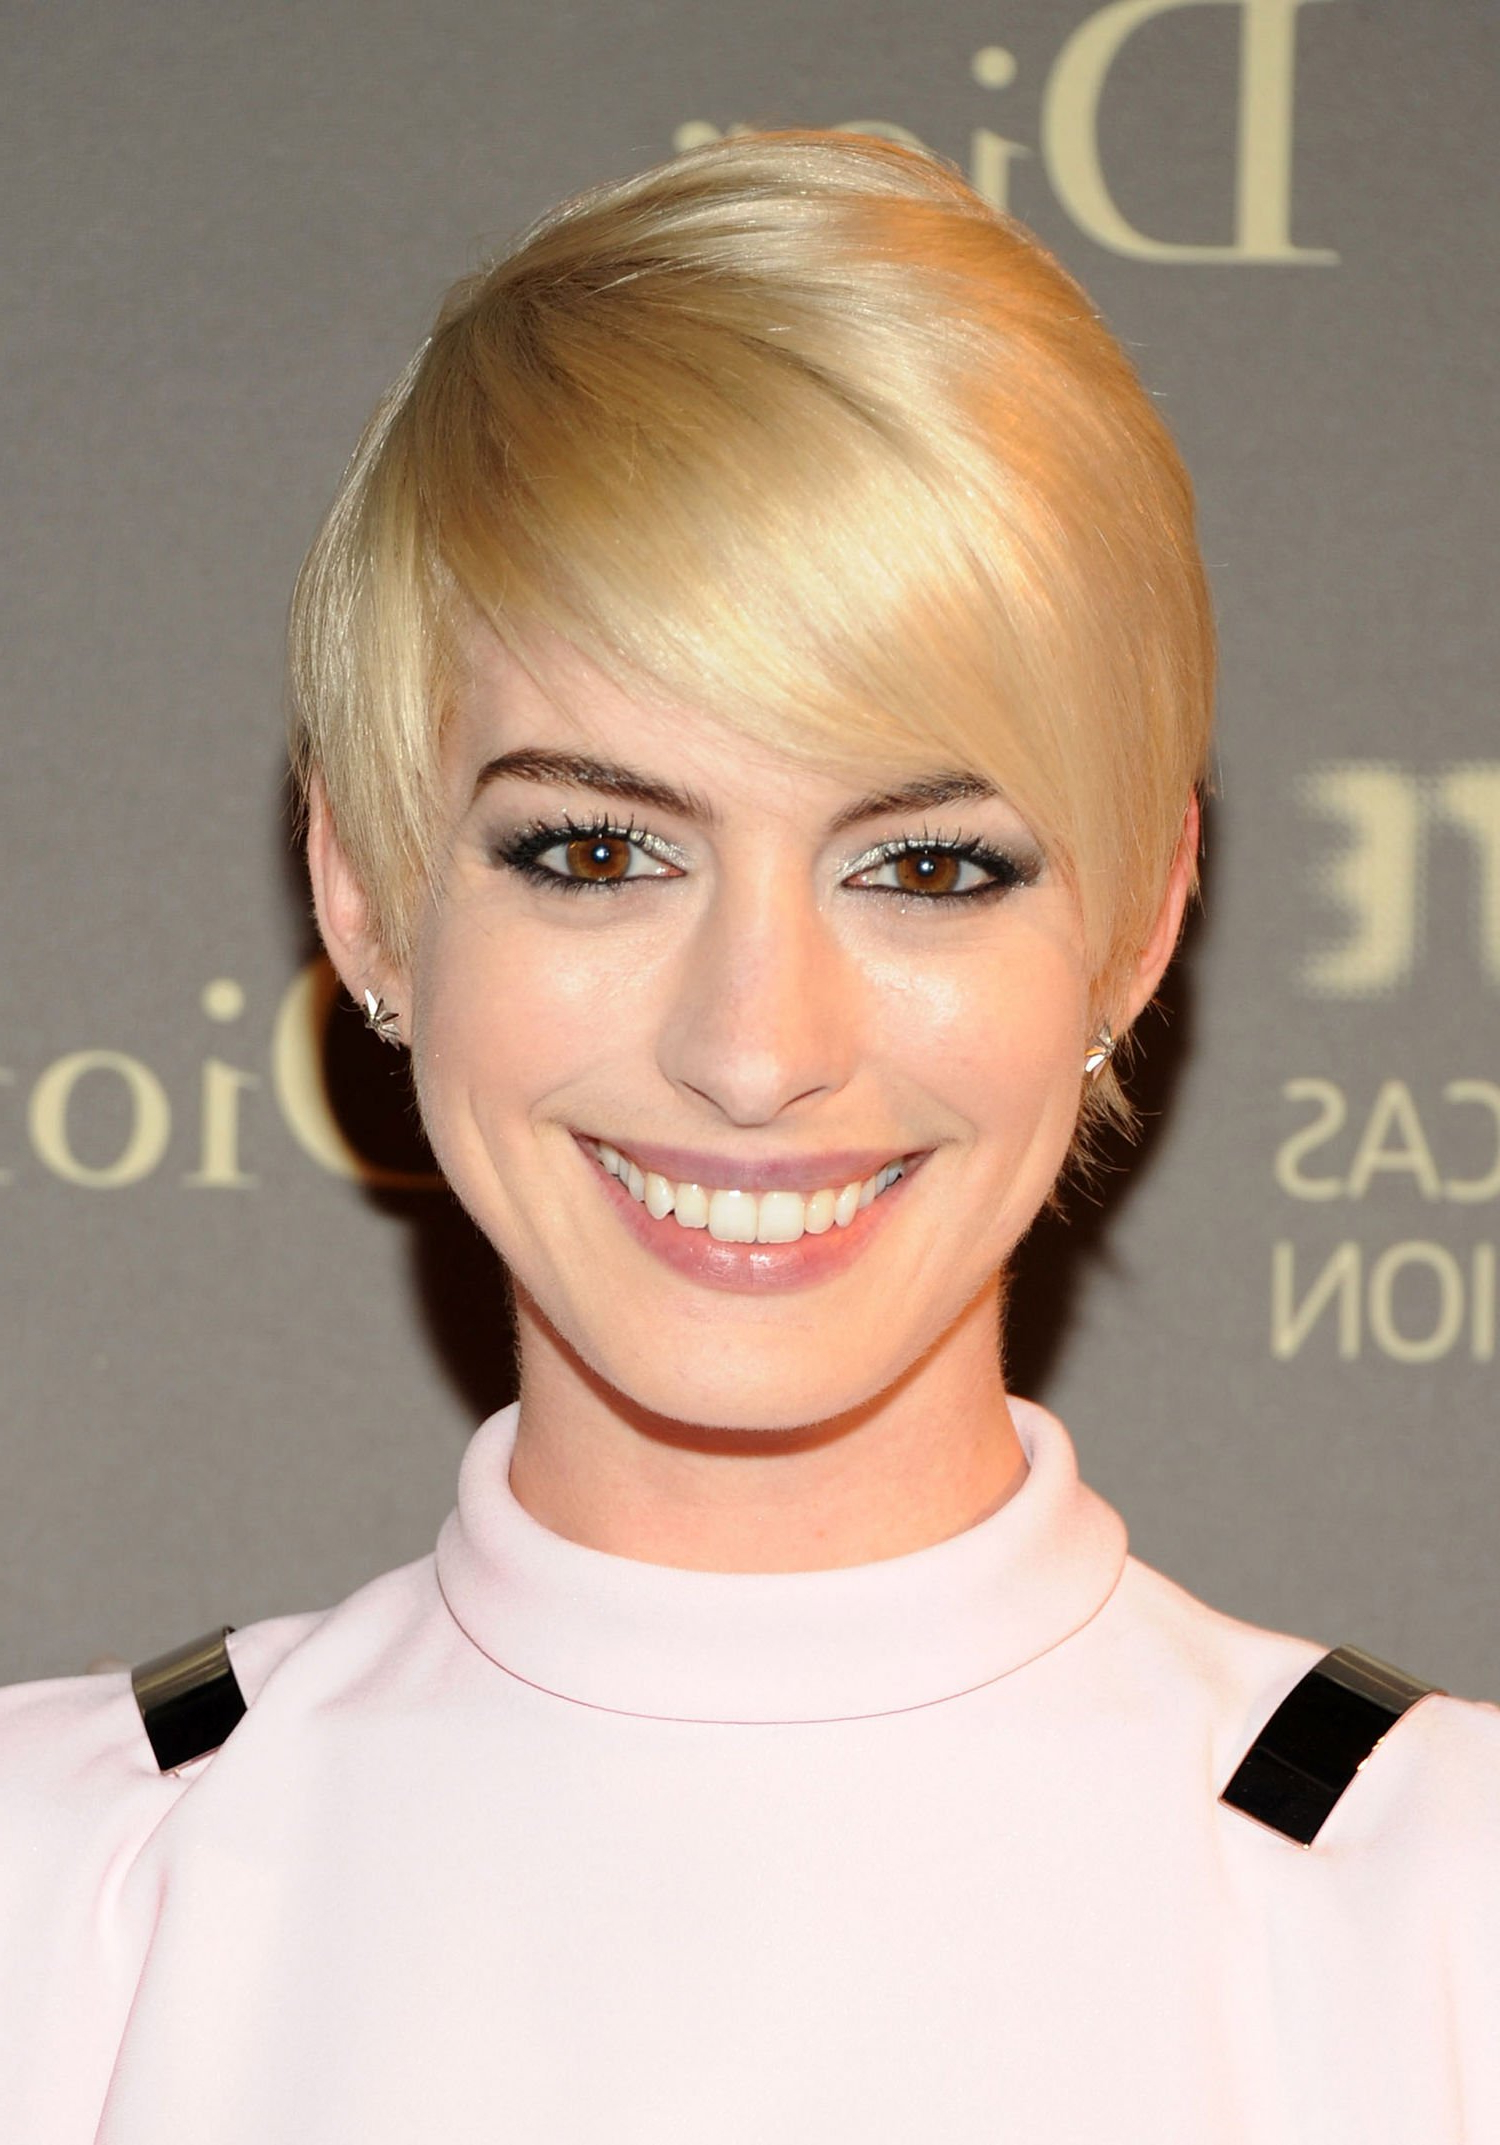 Top 100 Short Hairstyles For Women – Herinterest/ With Rita Ora Short Hairstyles (View 21 of 25)